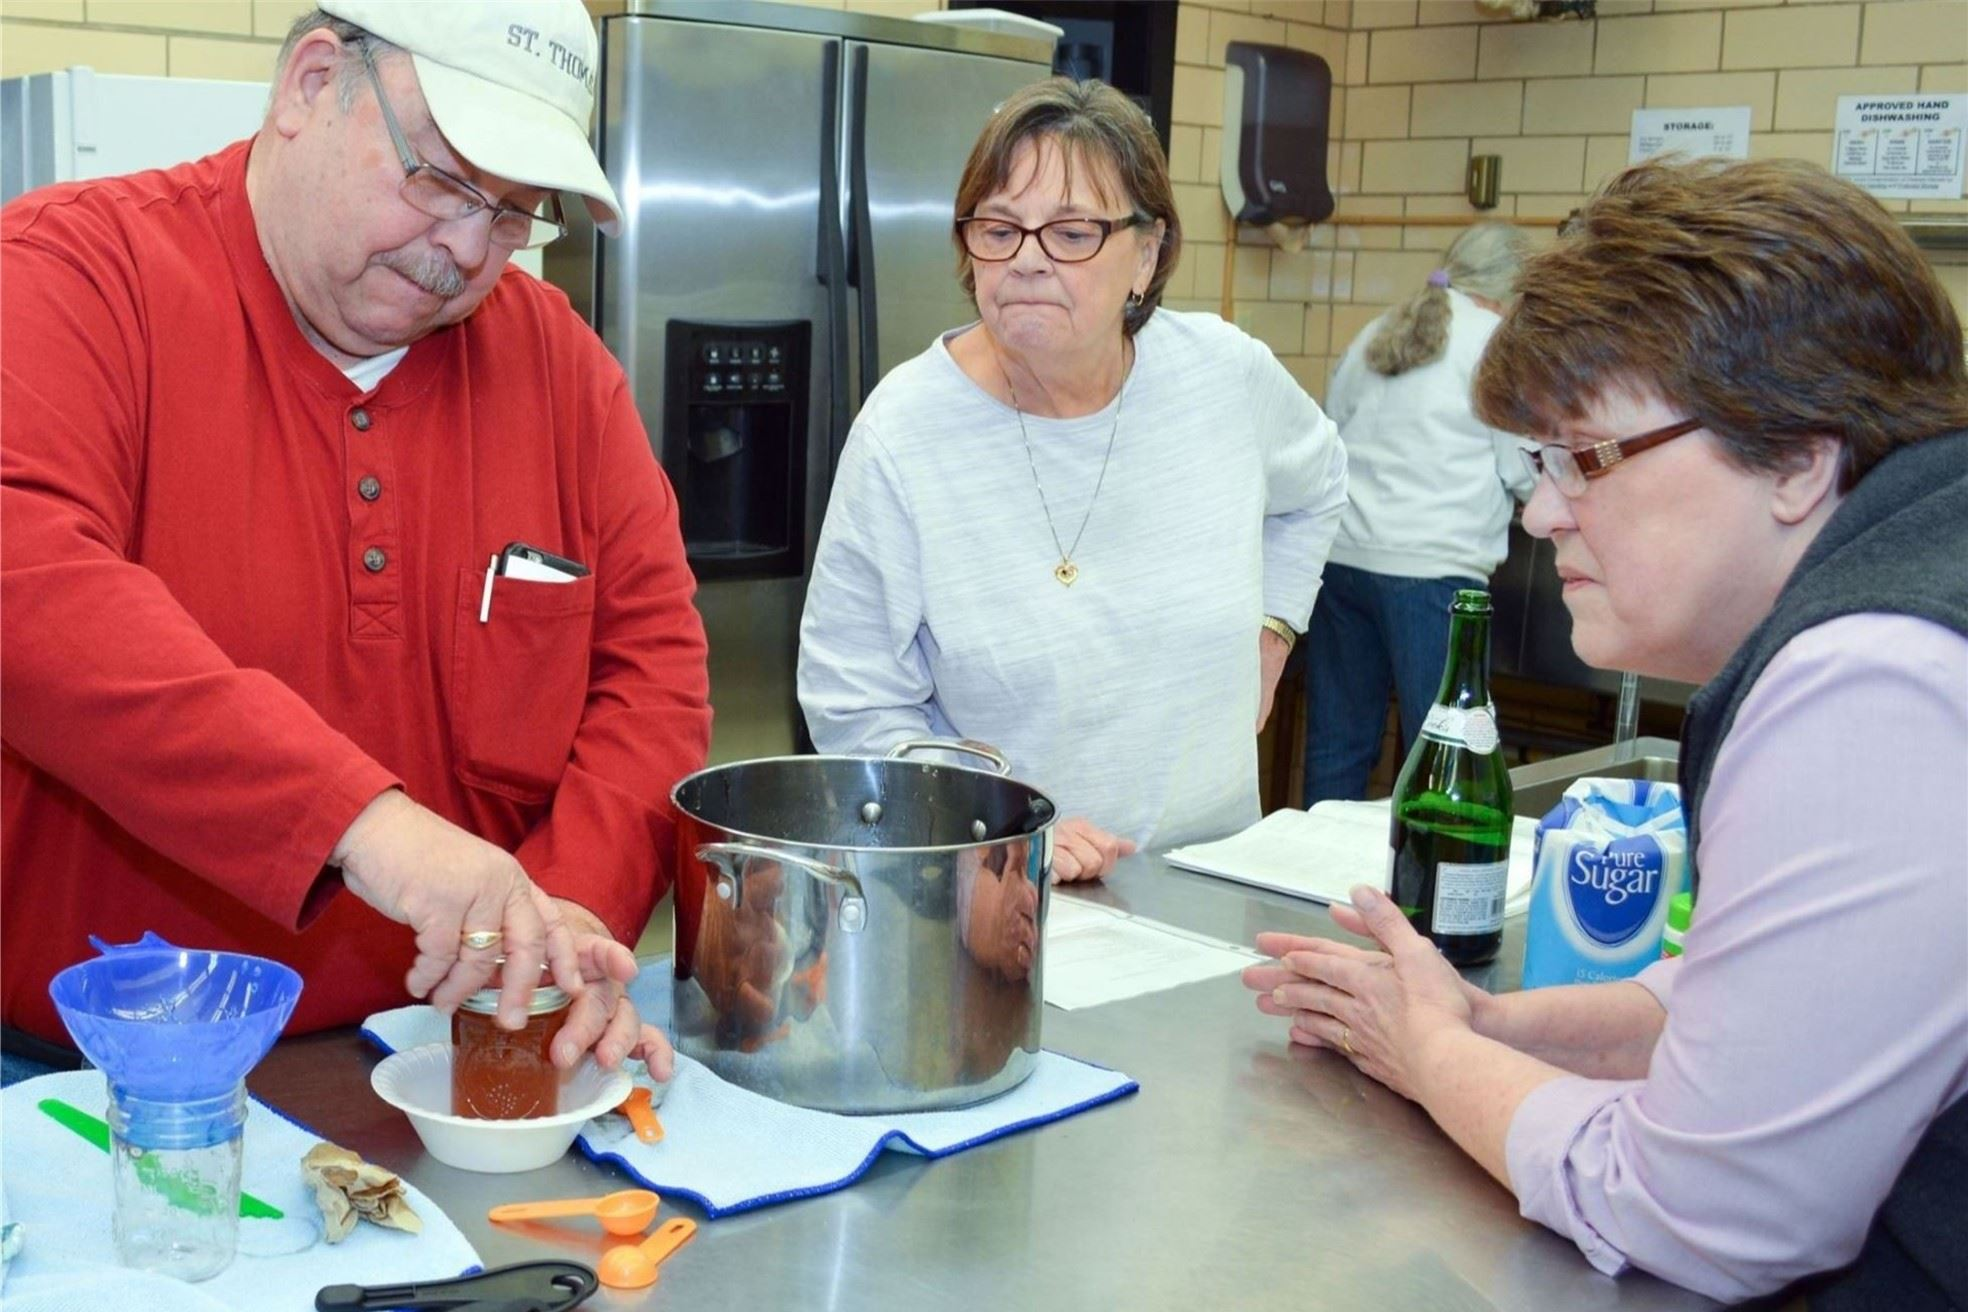 Adults participate in cooking program